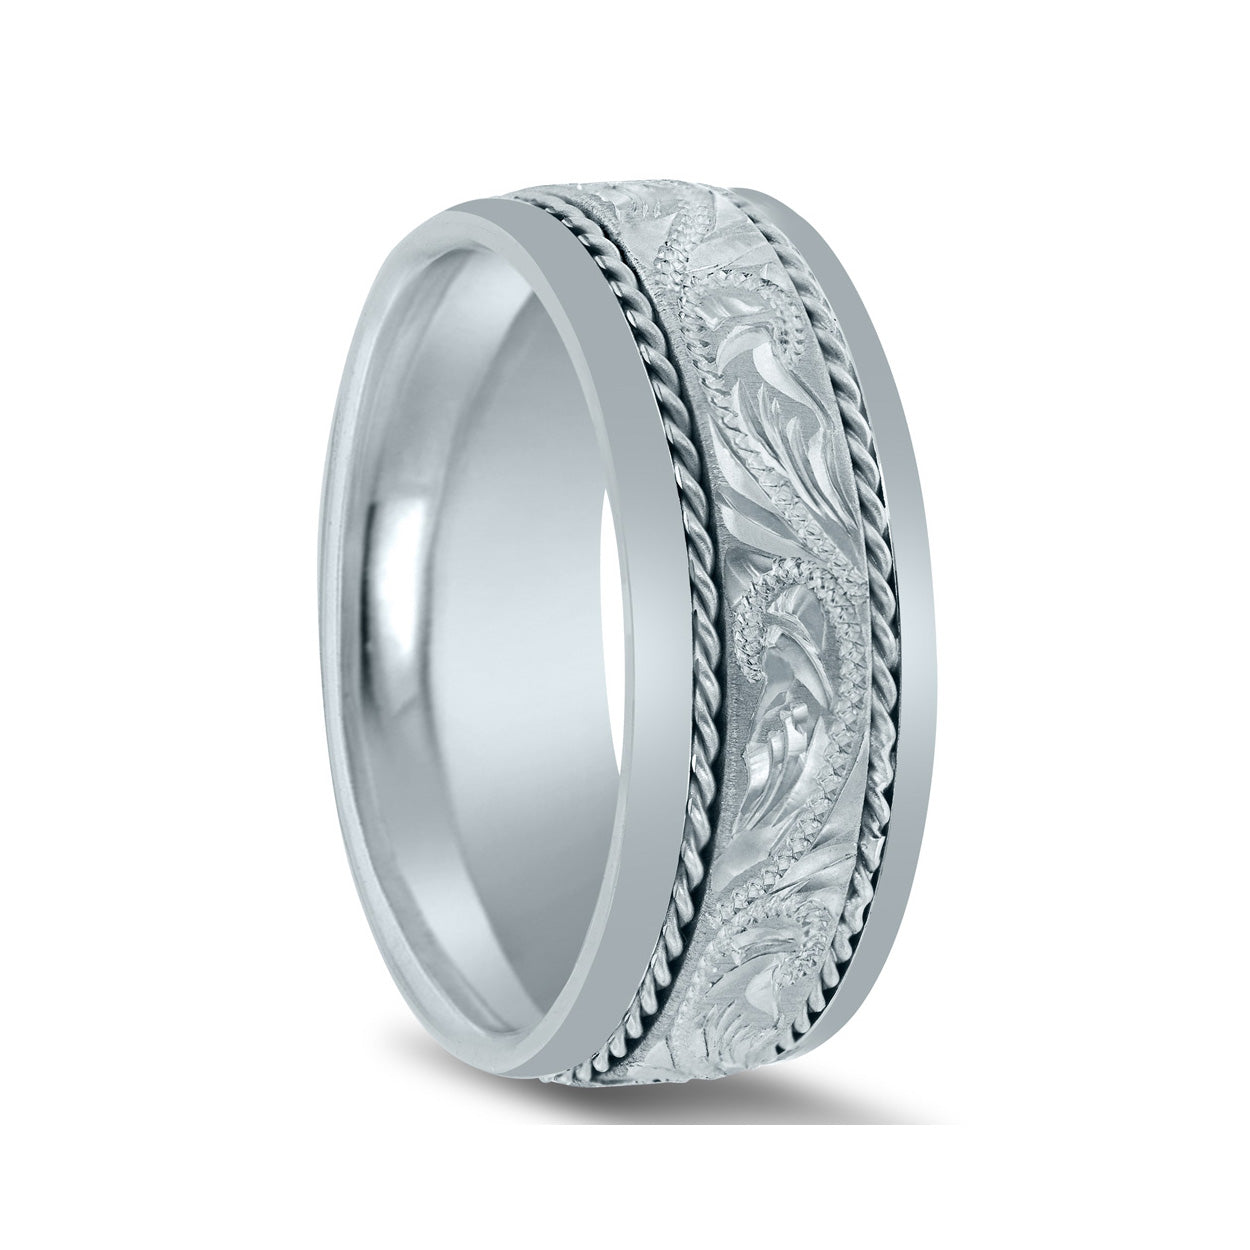 Barmakian Novell Men S Hand Engraved Wedding Rings Barmakian